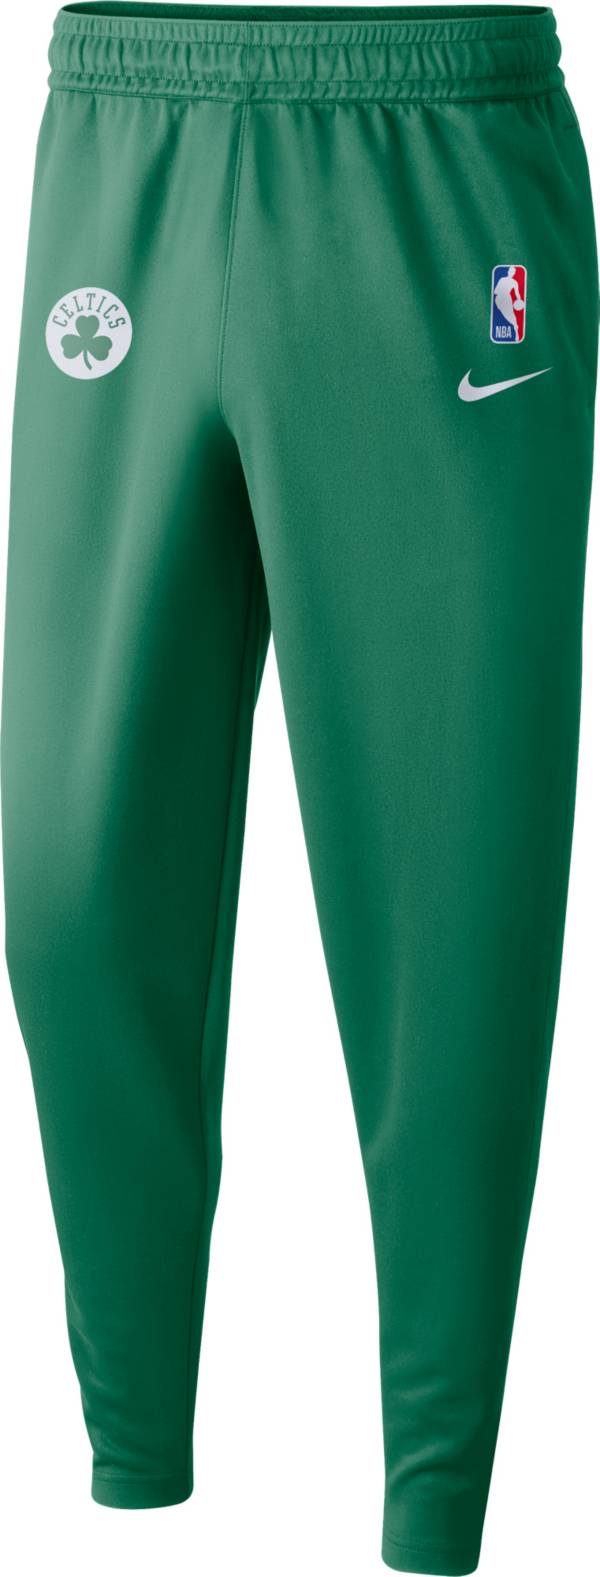 Nike Men's Boston Celtics Dri-FIT Spotlight Pants product image